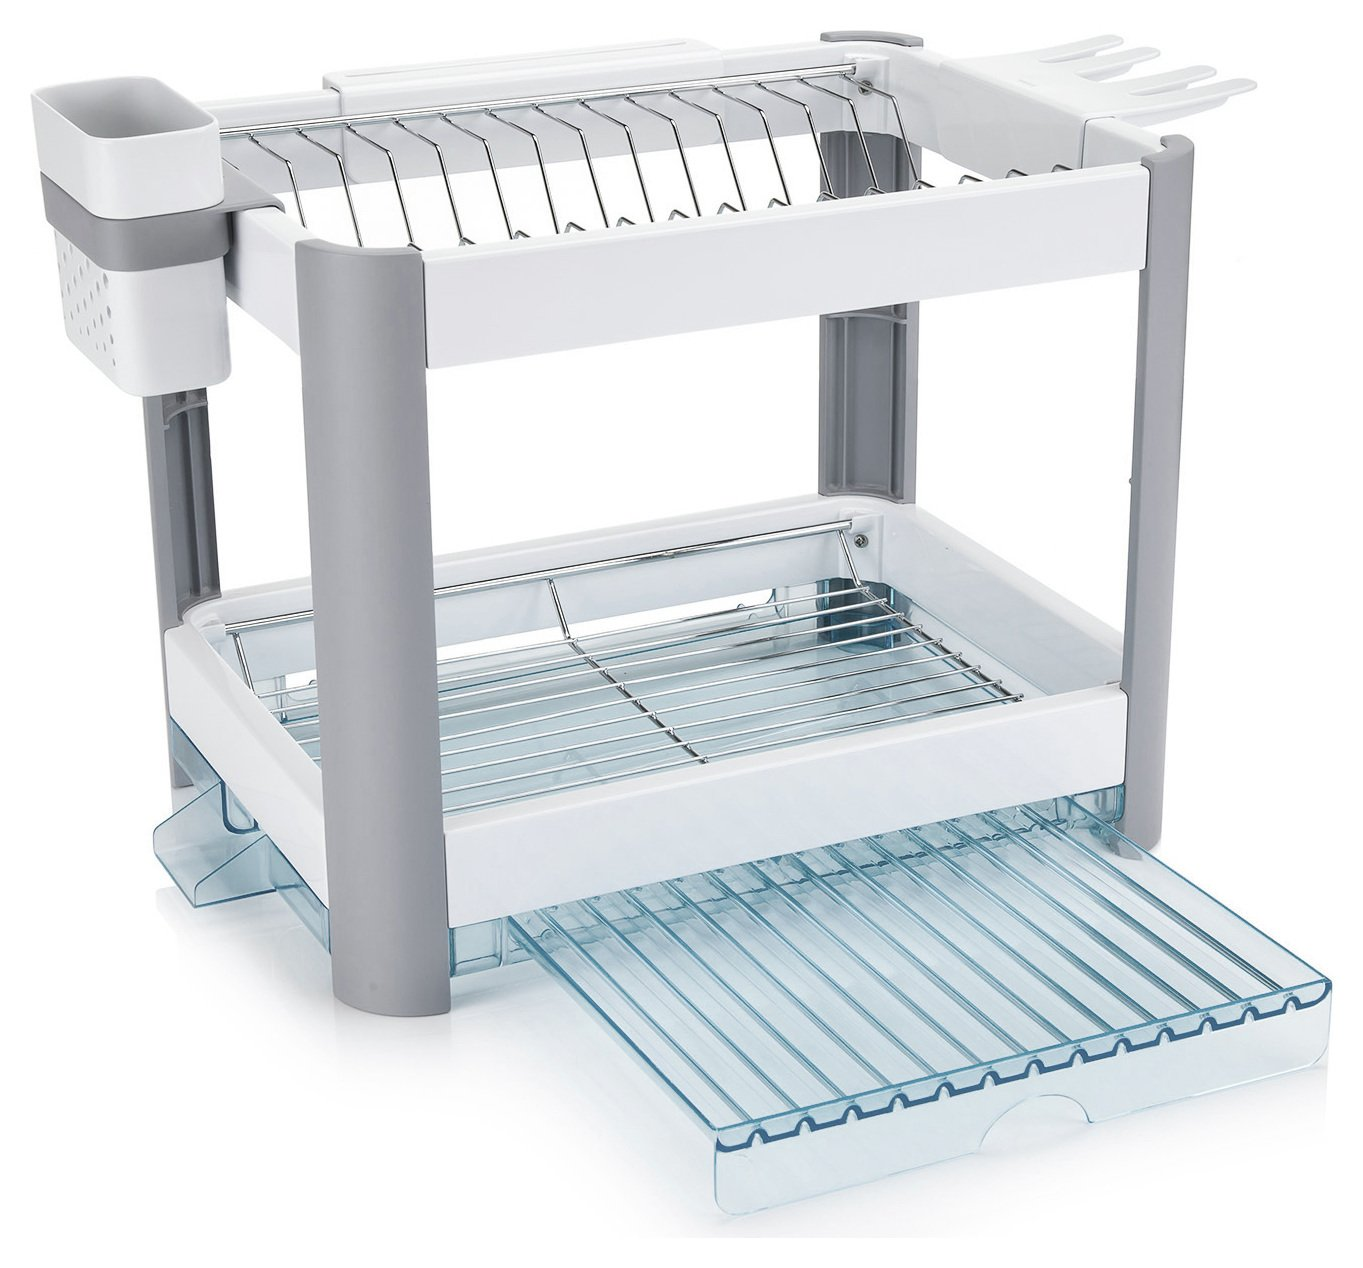 Minky Twin Tier Extending Dish Rack.